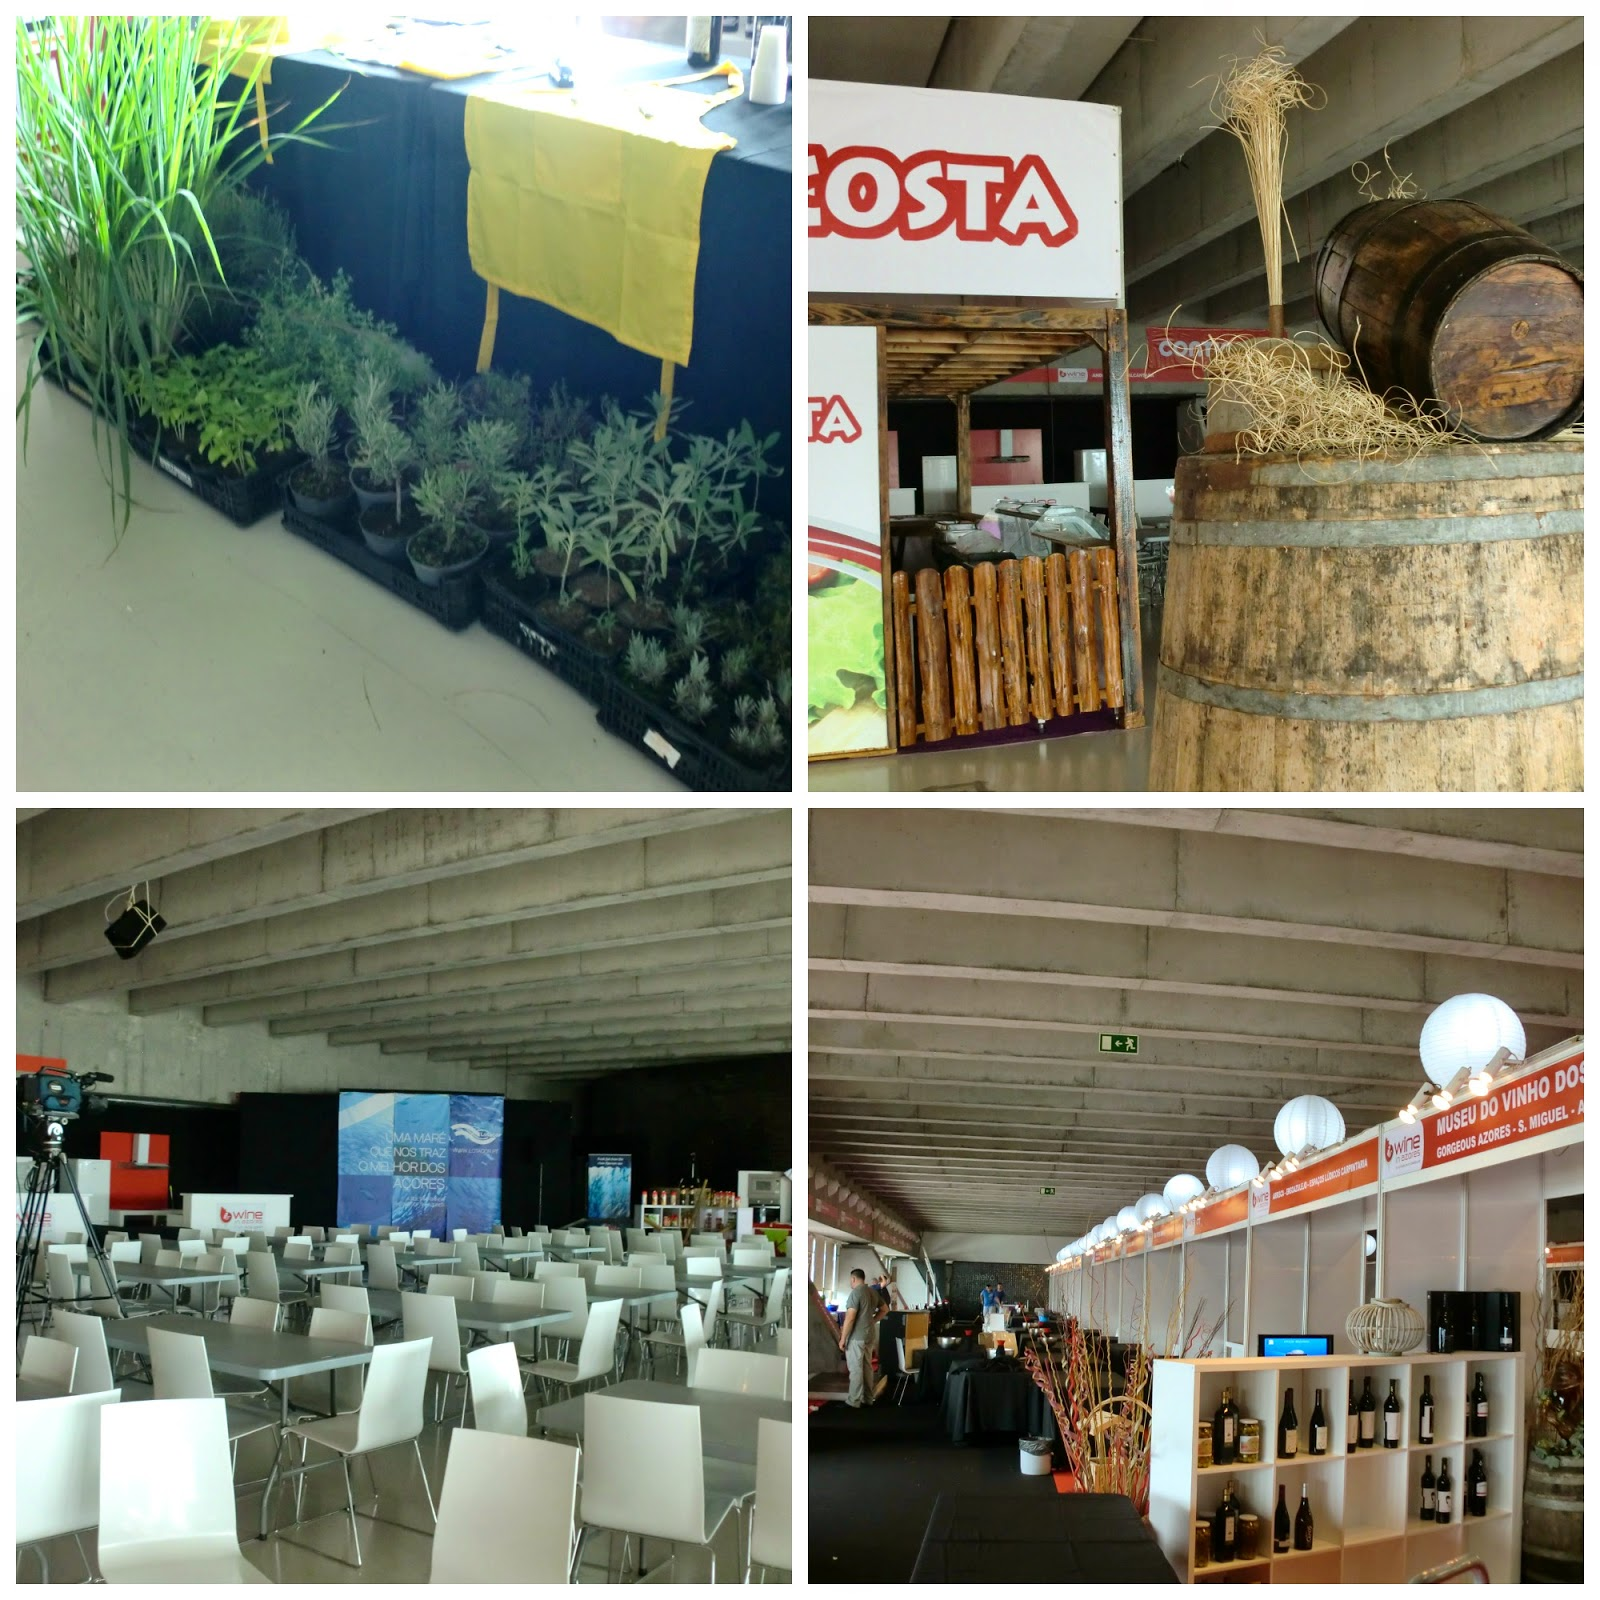 Wine in Azores 2014 - Behind the Scenes - Parte 2!